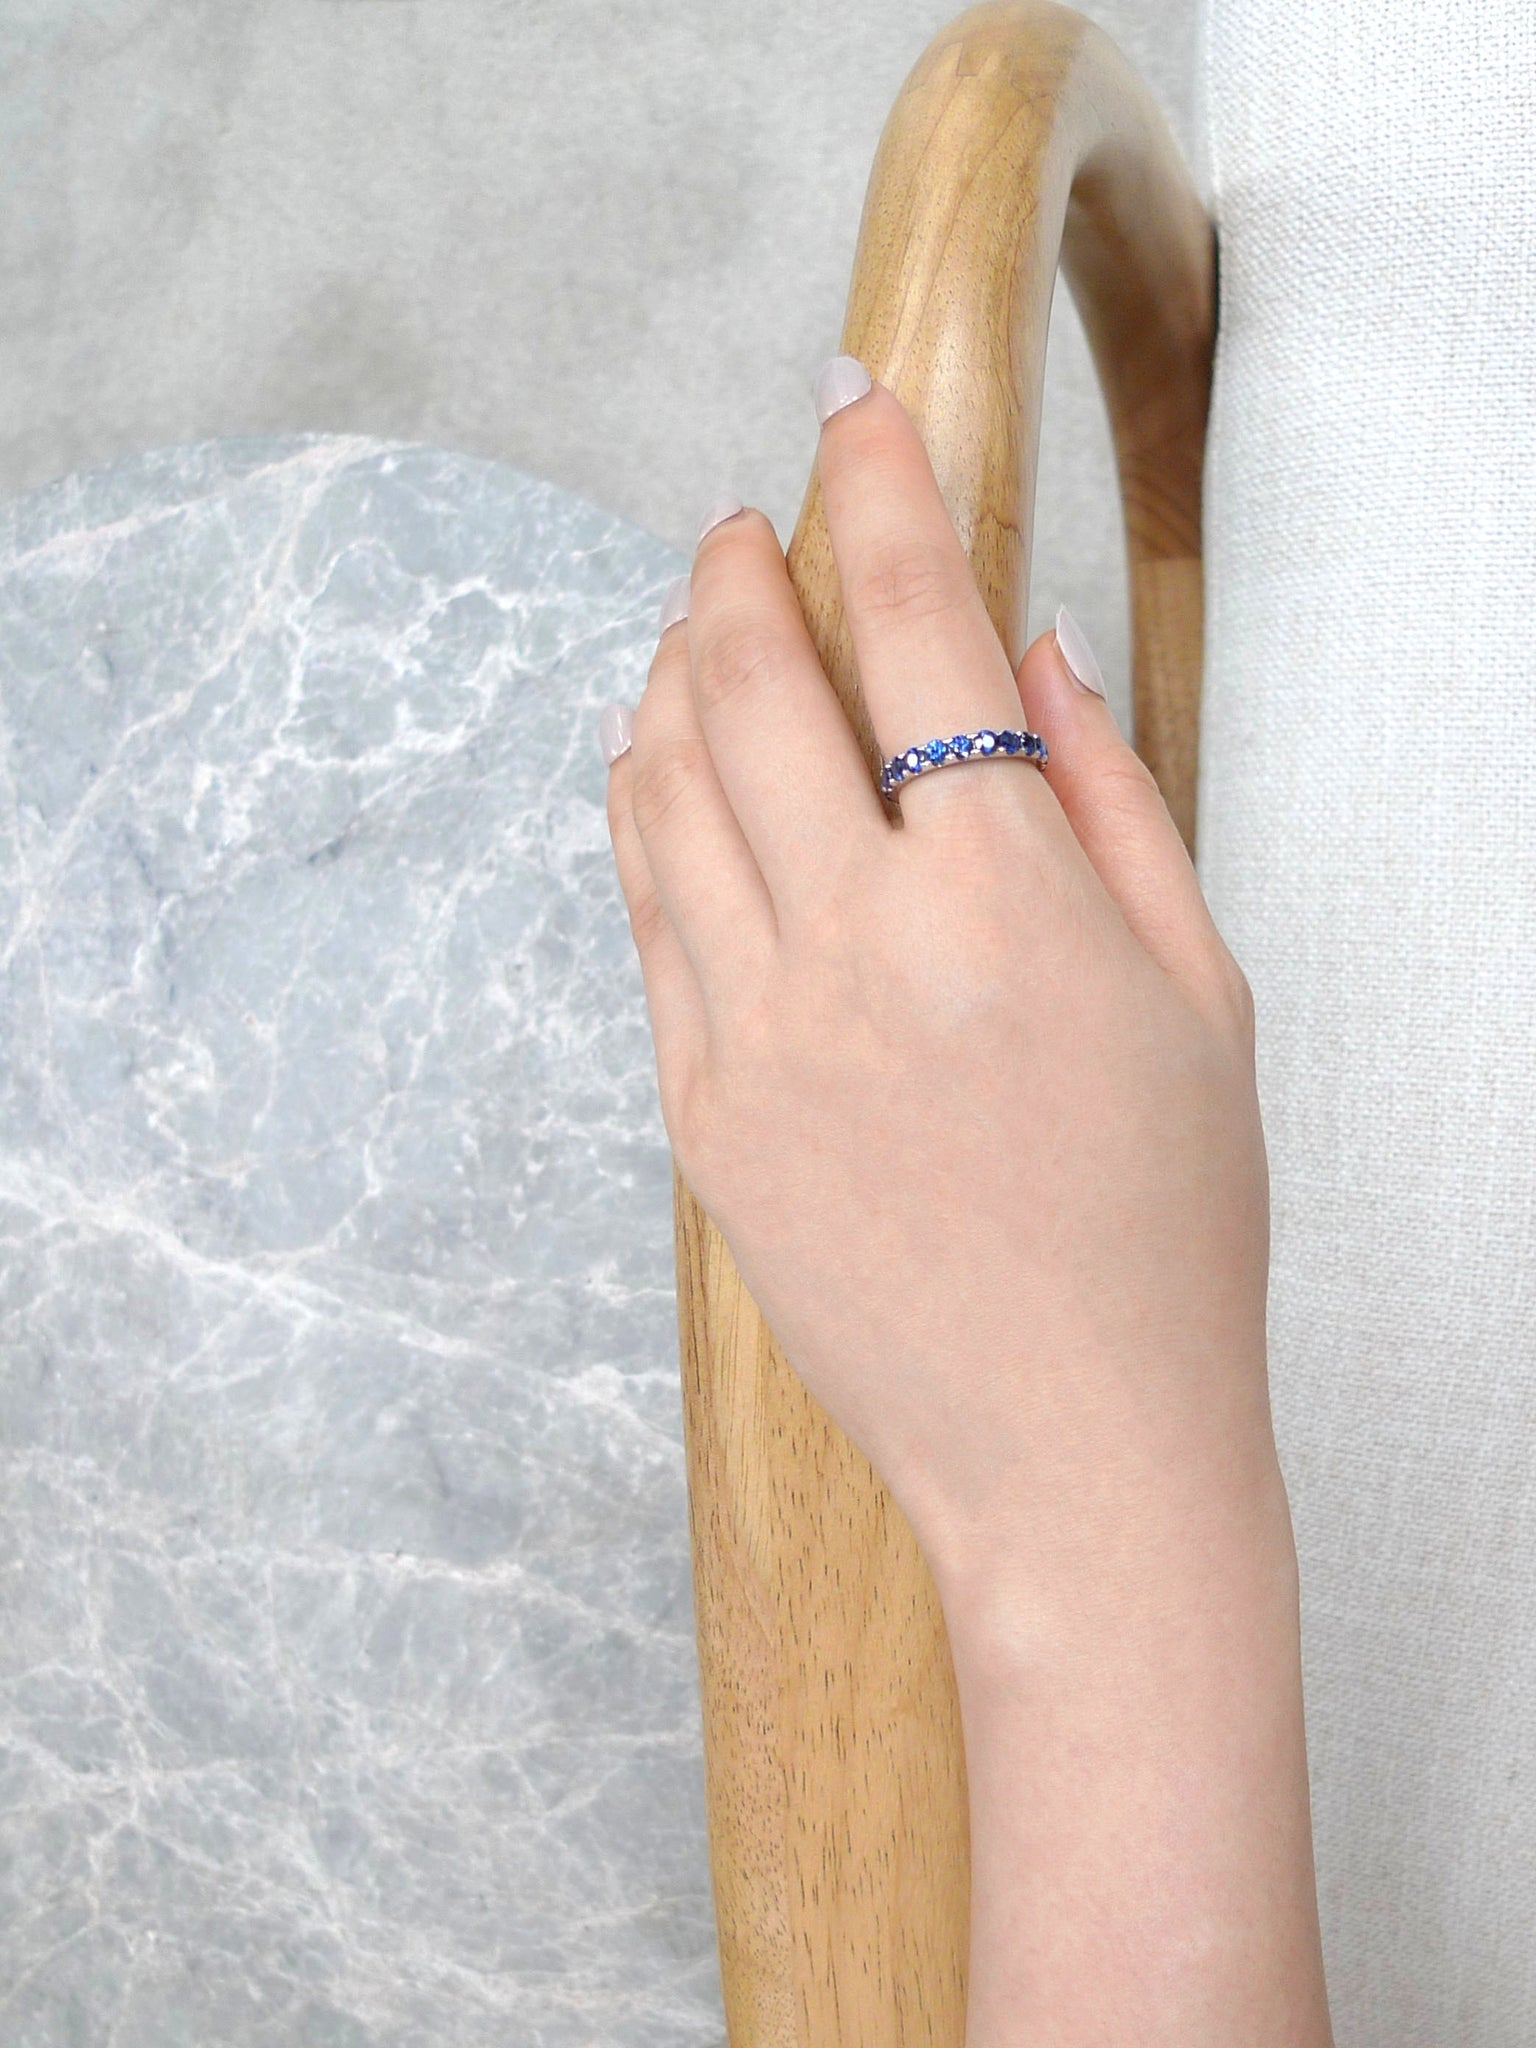 blue_sapphire_half_eternity_wedding_ring_model_hand